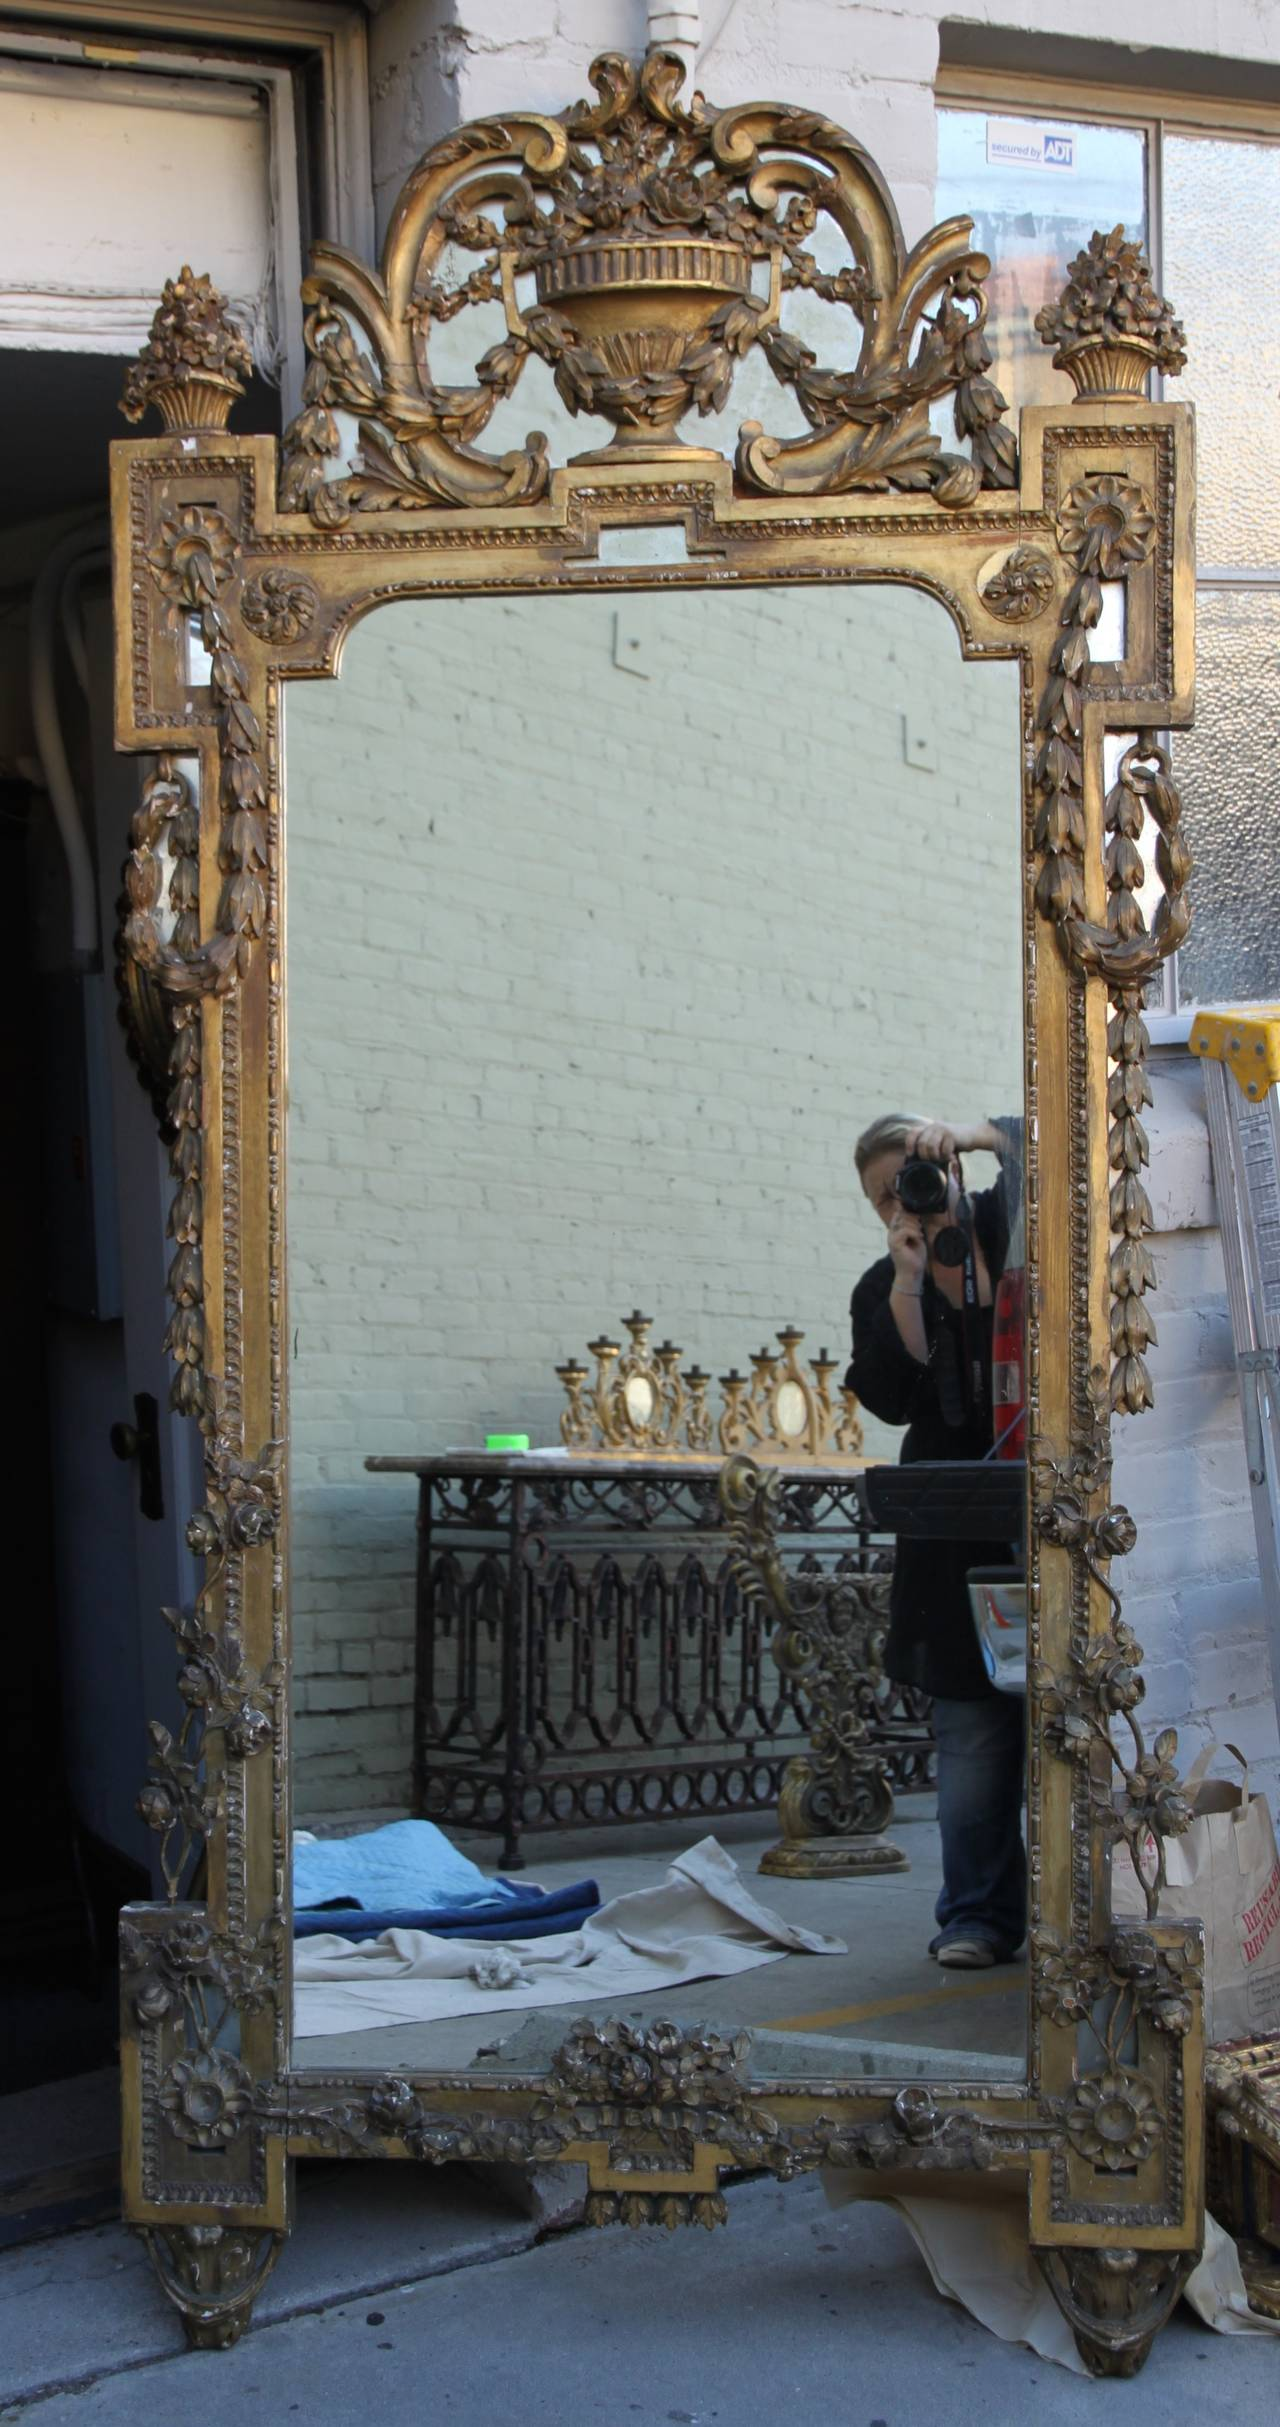 19th century Italian Baroque style giltwood carved mirror with centre urn, garlands, and acanthus leaves throughout.